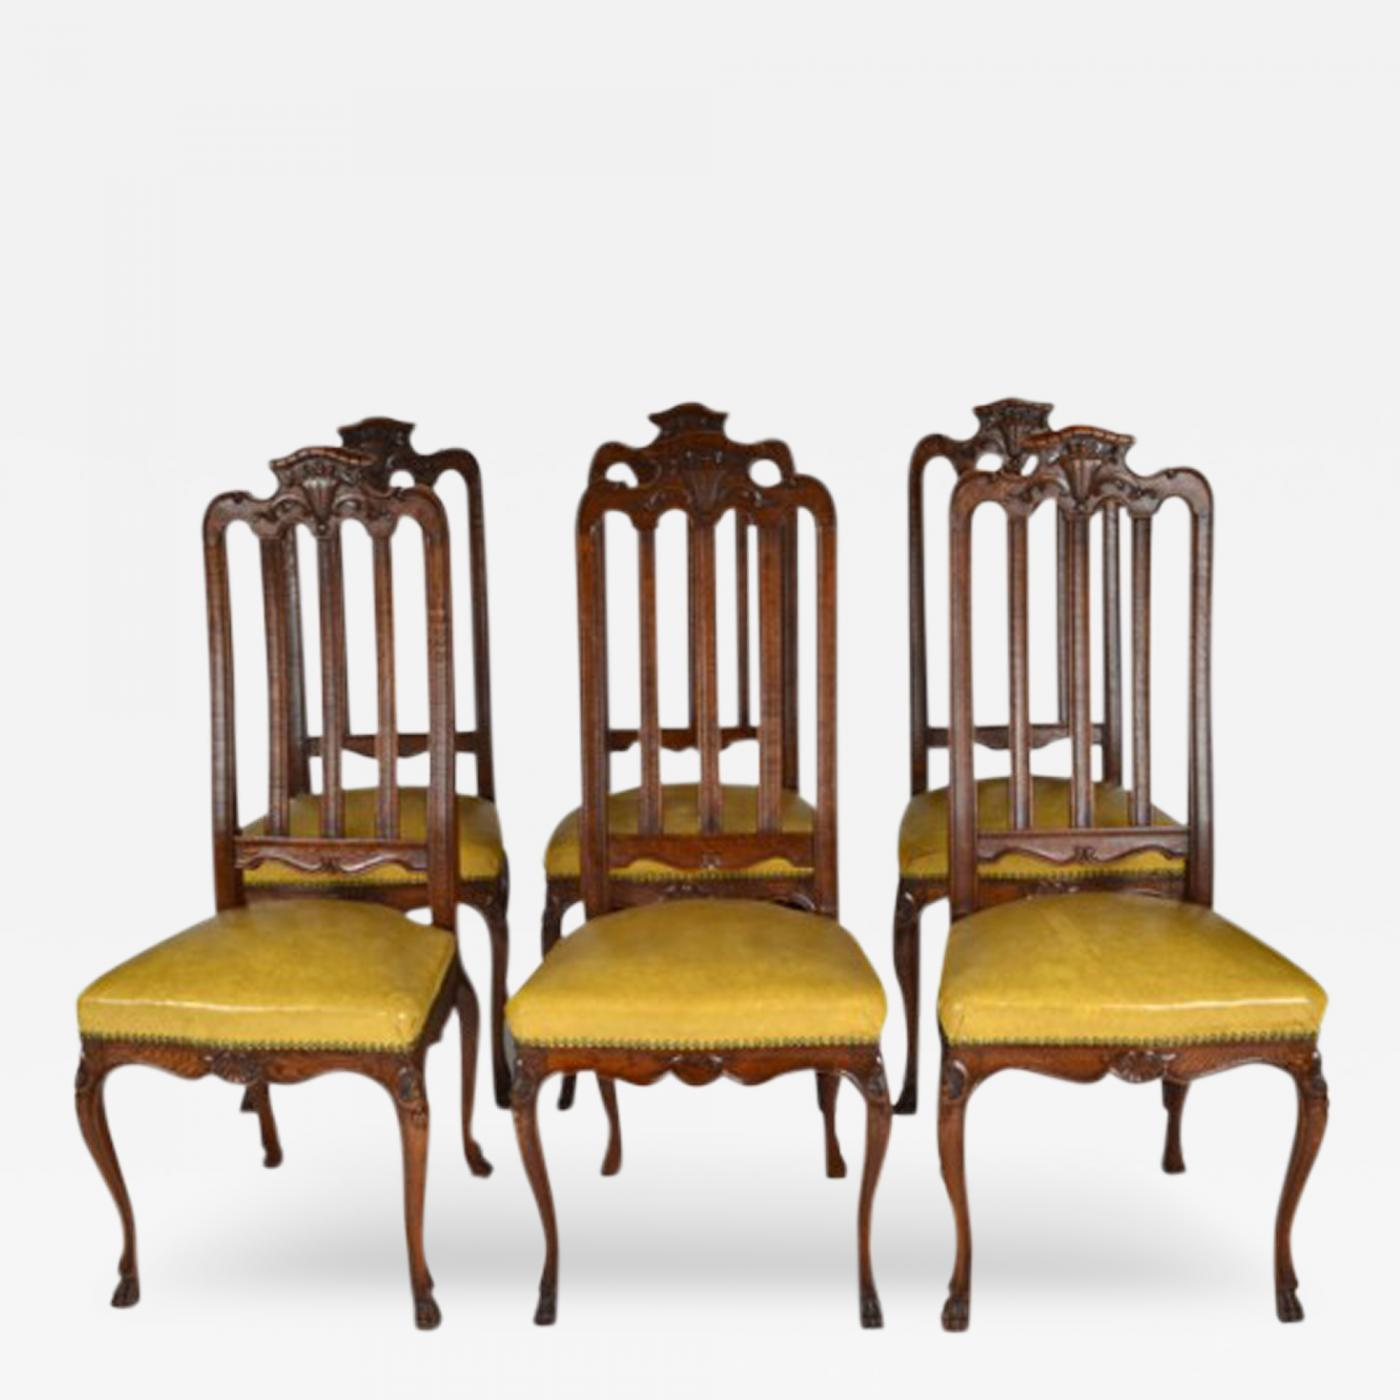 Awe Inspiring Antique Set Of Six Louis Xiv Oak Dining Chairs Caraccident5 Cool Chair Designs And Ideas Caraccident5Info